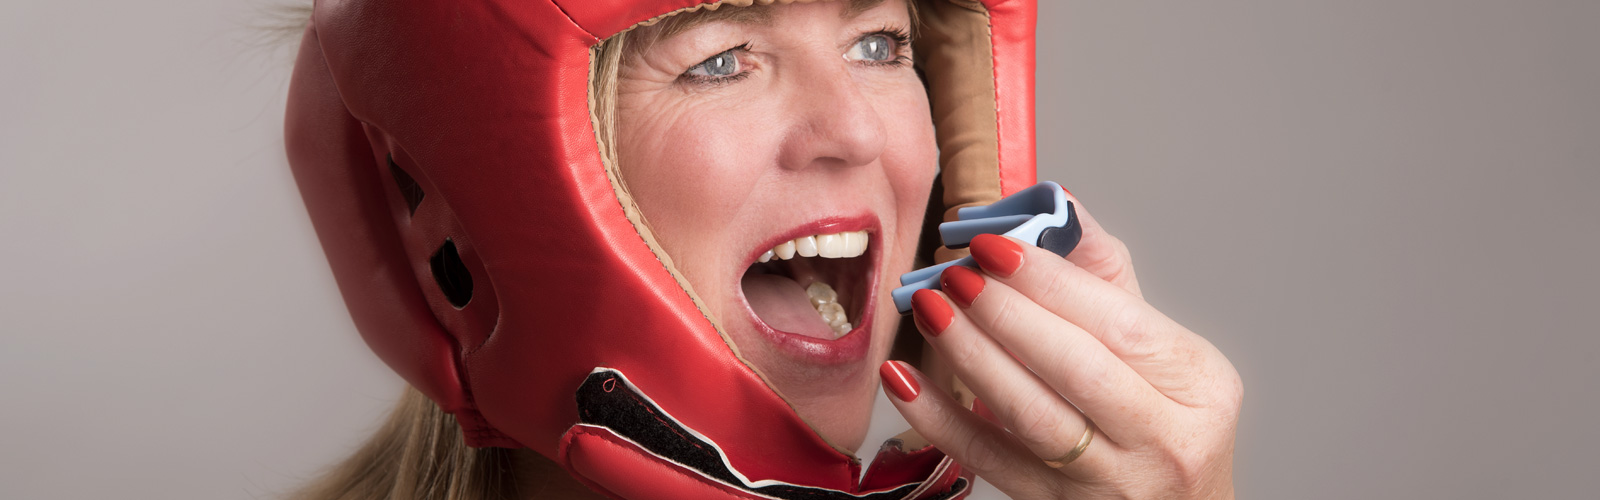 Female boxer with a mouthguards